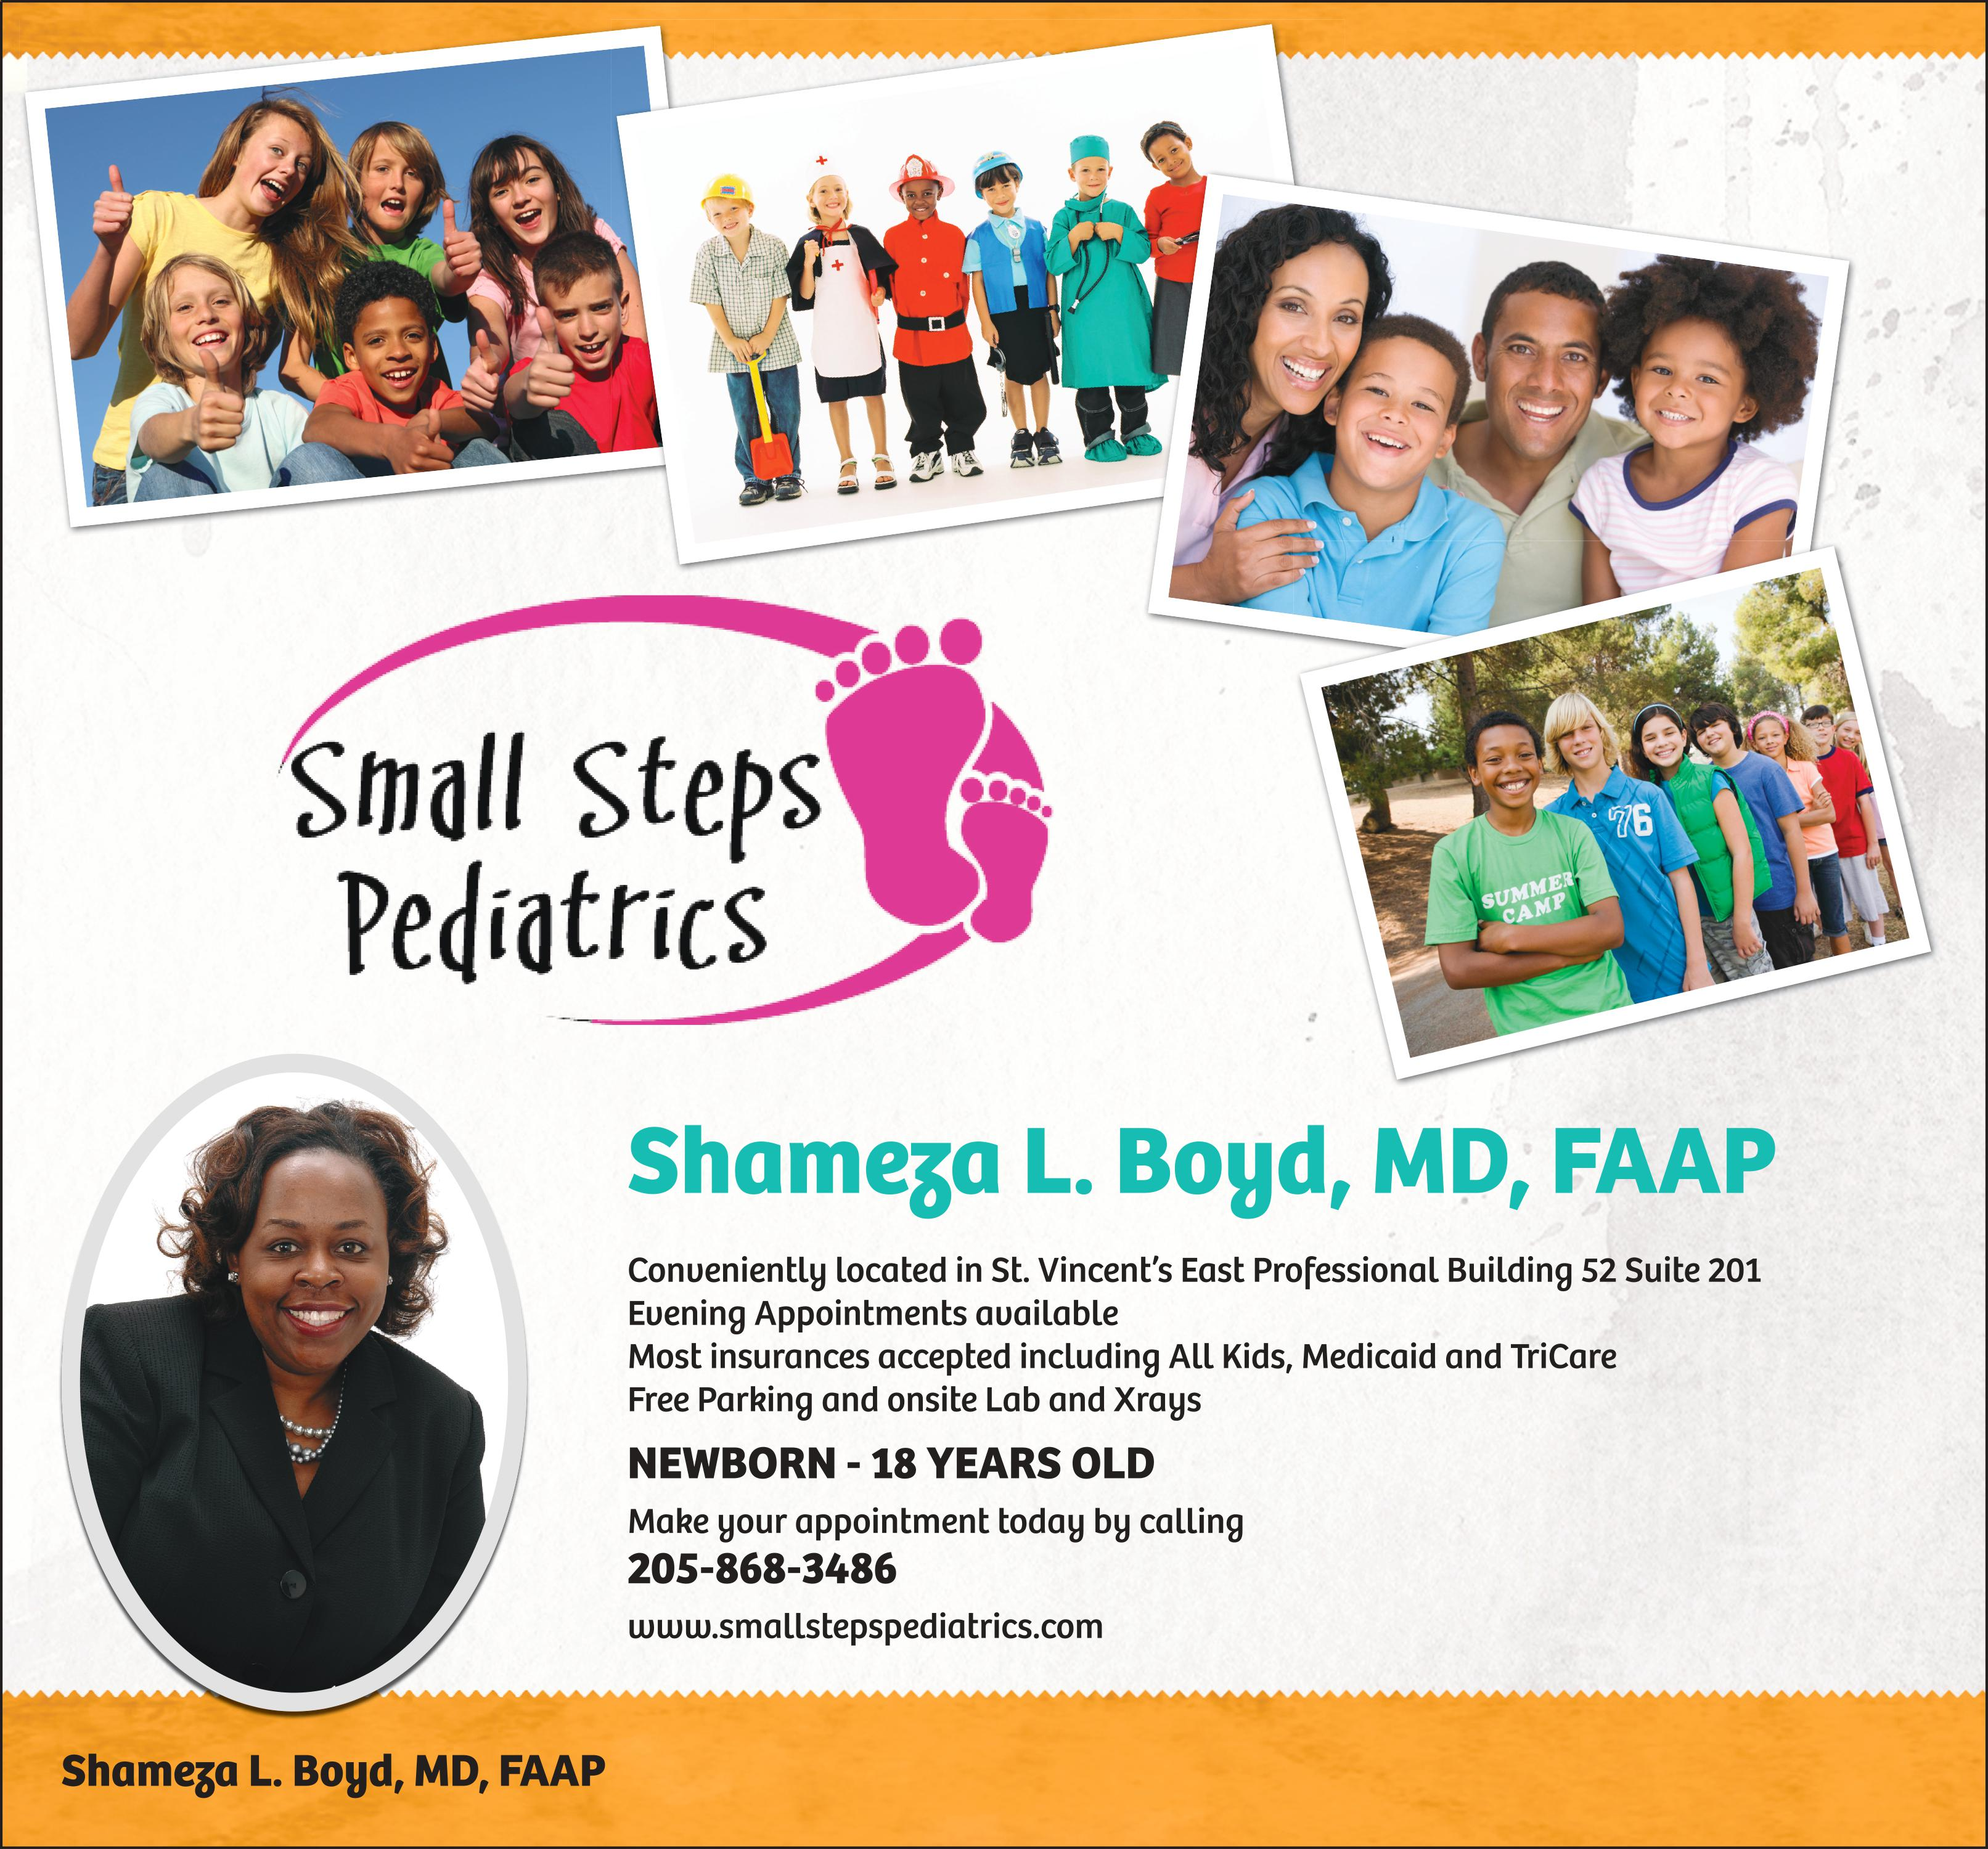 Small Steps Pediatrics doctor puts young patients at ease